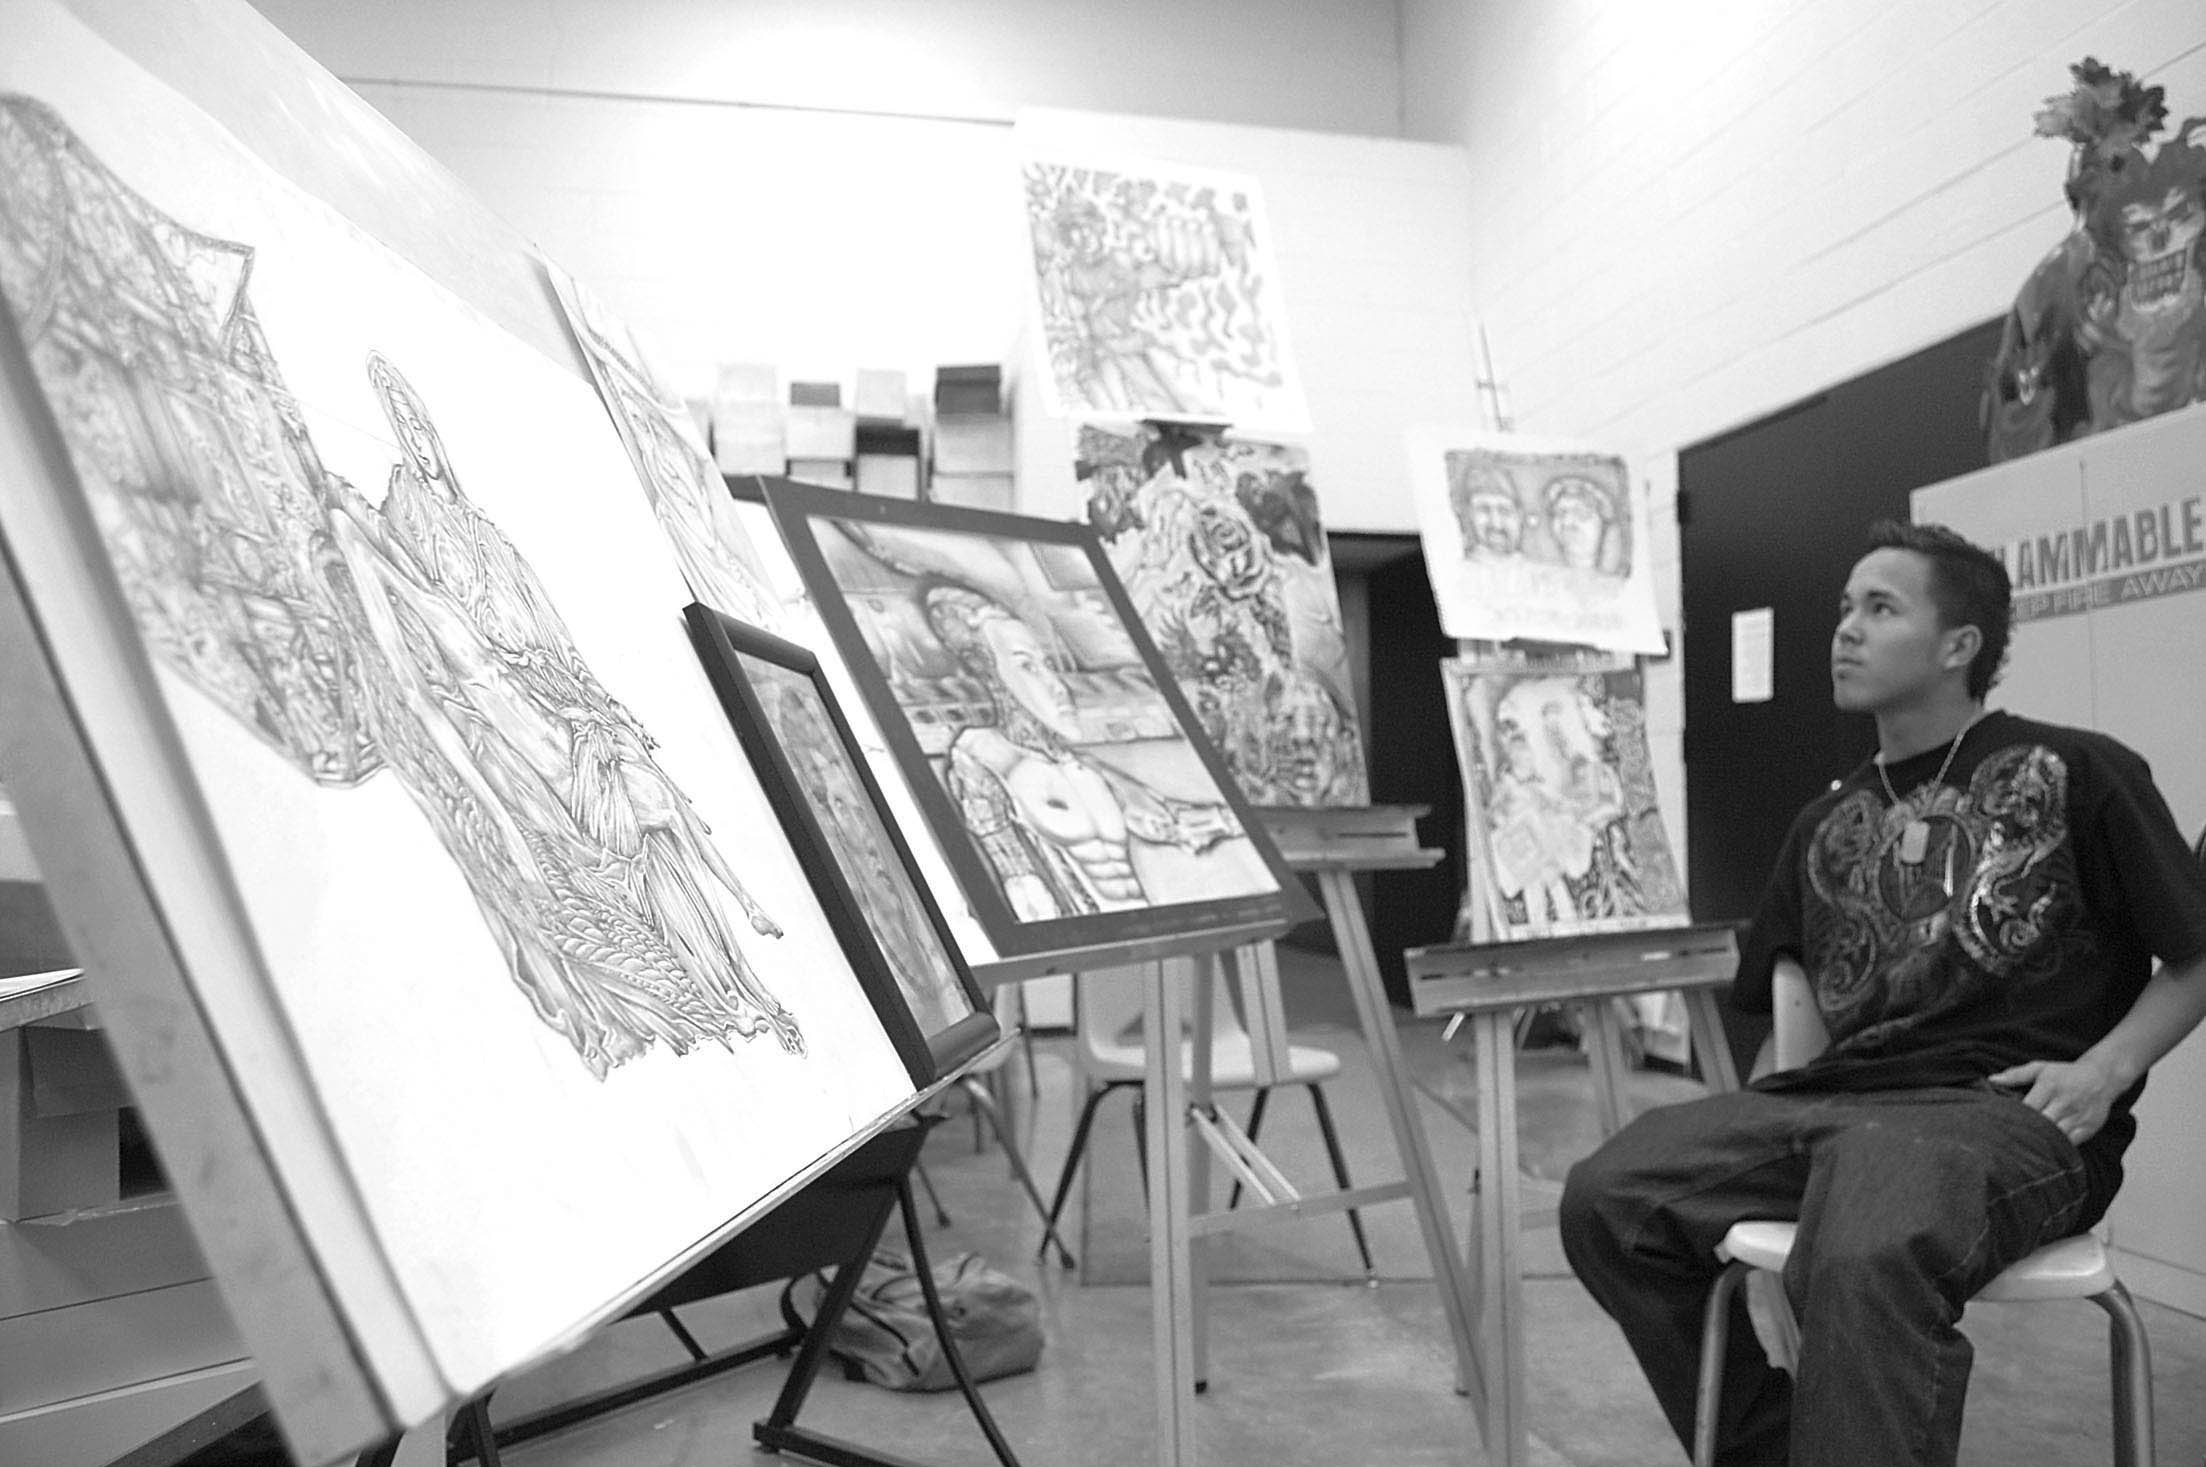 As Omar Rios explains his idea for his latest drawing of having a satisfied Michelangelo peering over several of his classic works of art, one couldn't help but see a resemblance as Rios looked over some of his own favorite drawings.